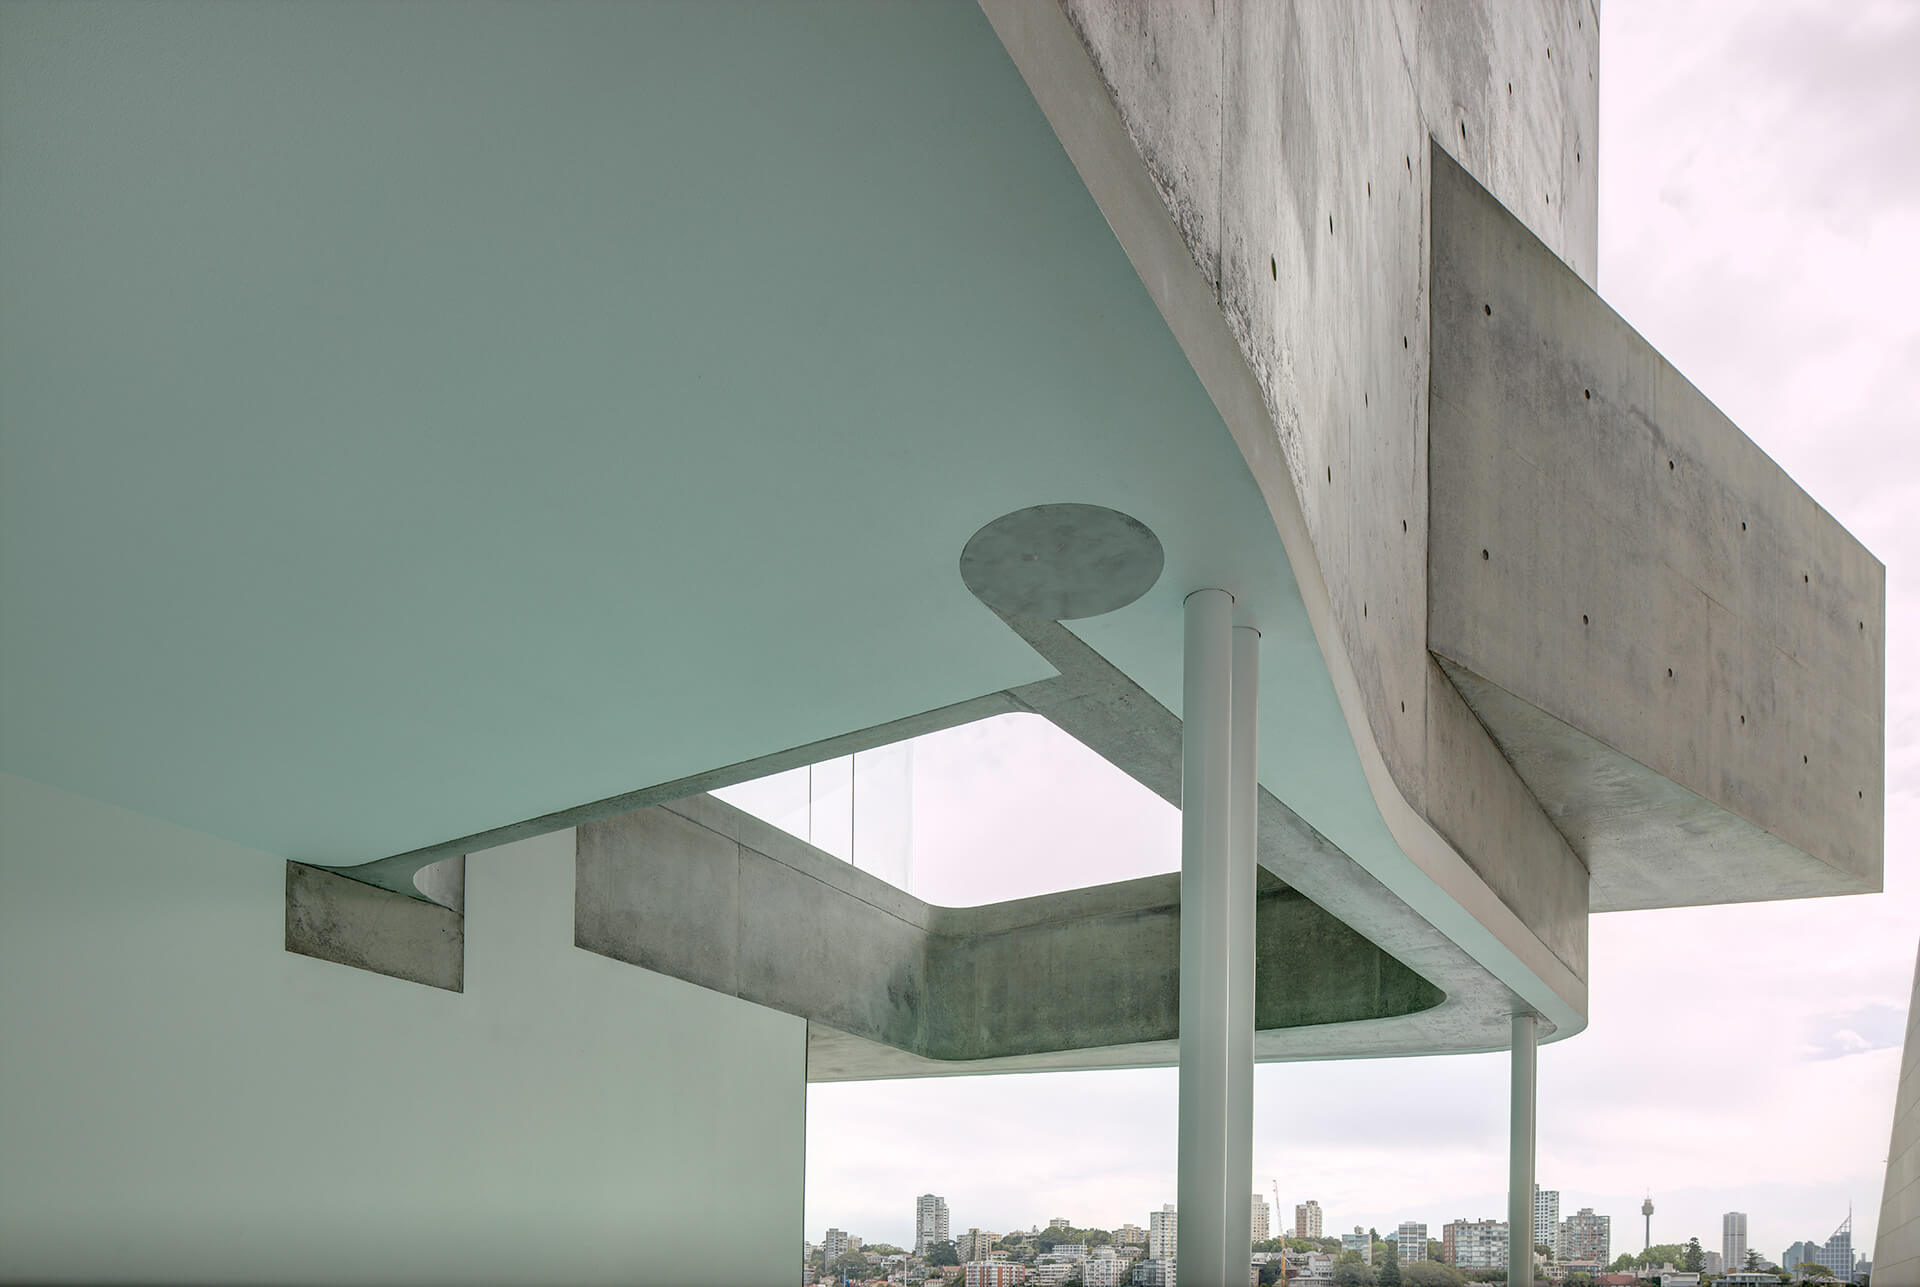 The punctures through the building create framed views | House Taurus | Durbach Block Jaggers Architects | STIRworld